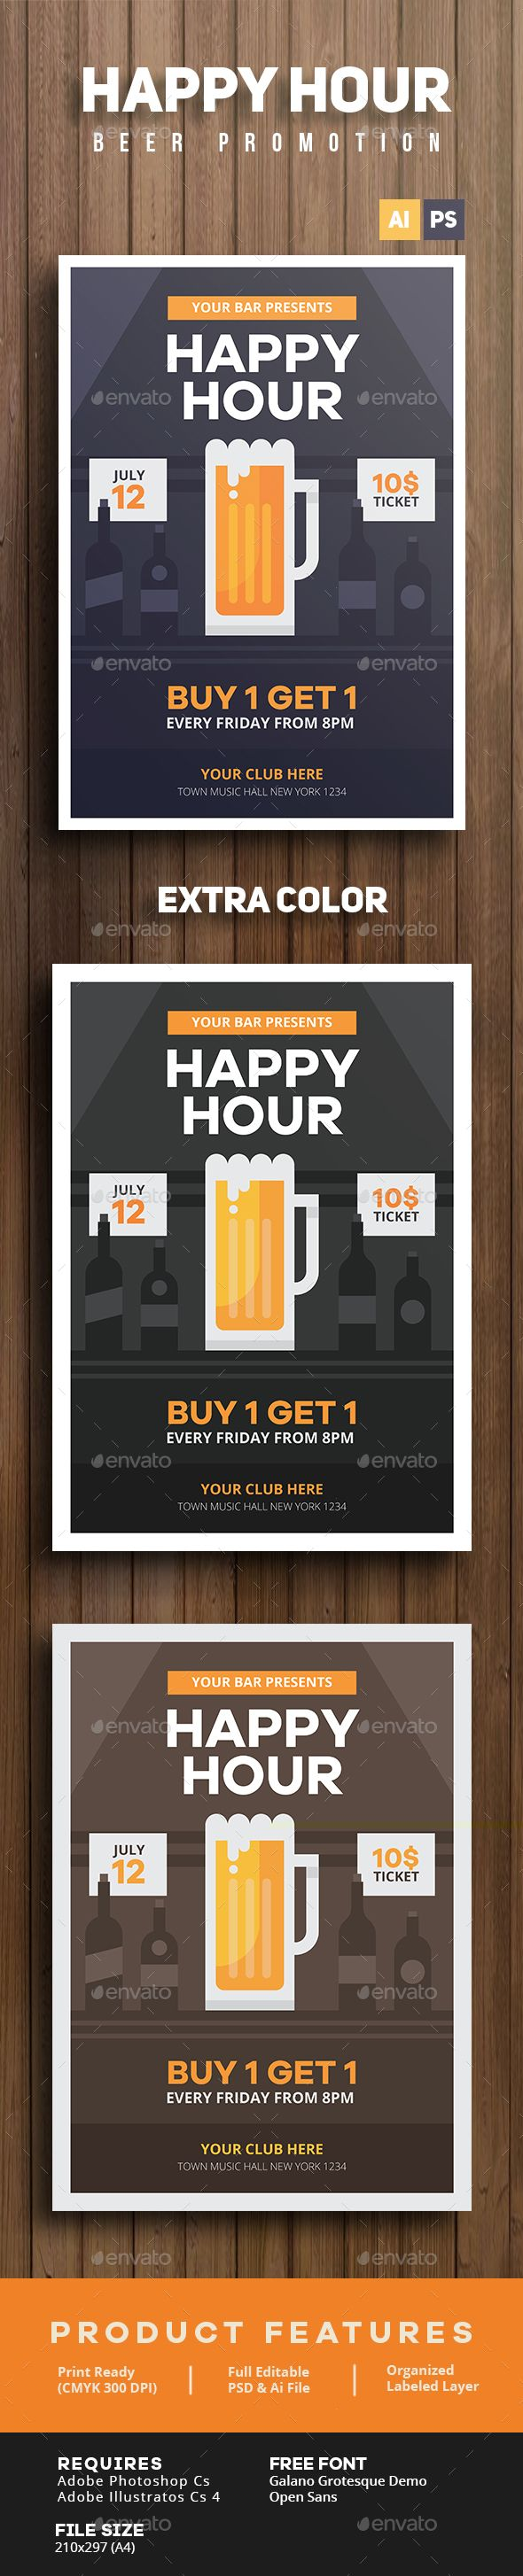 beer promotion happy hour flyer template restaurant happy and happy hour beer promotion flyer